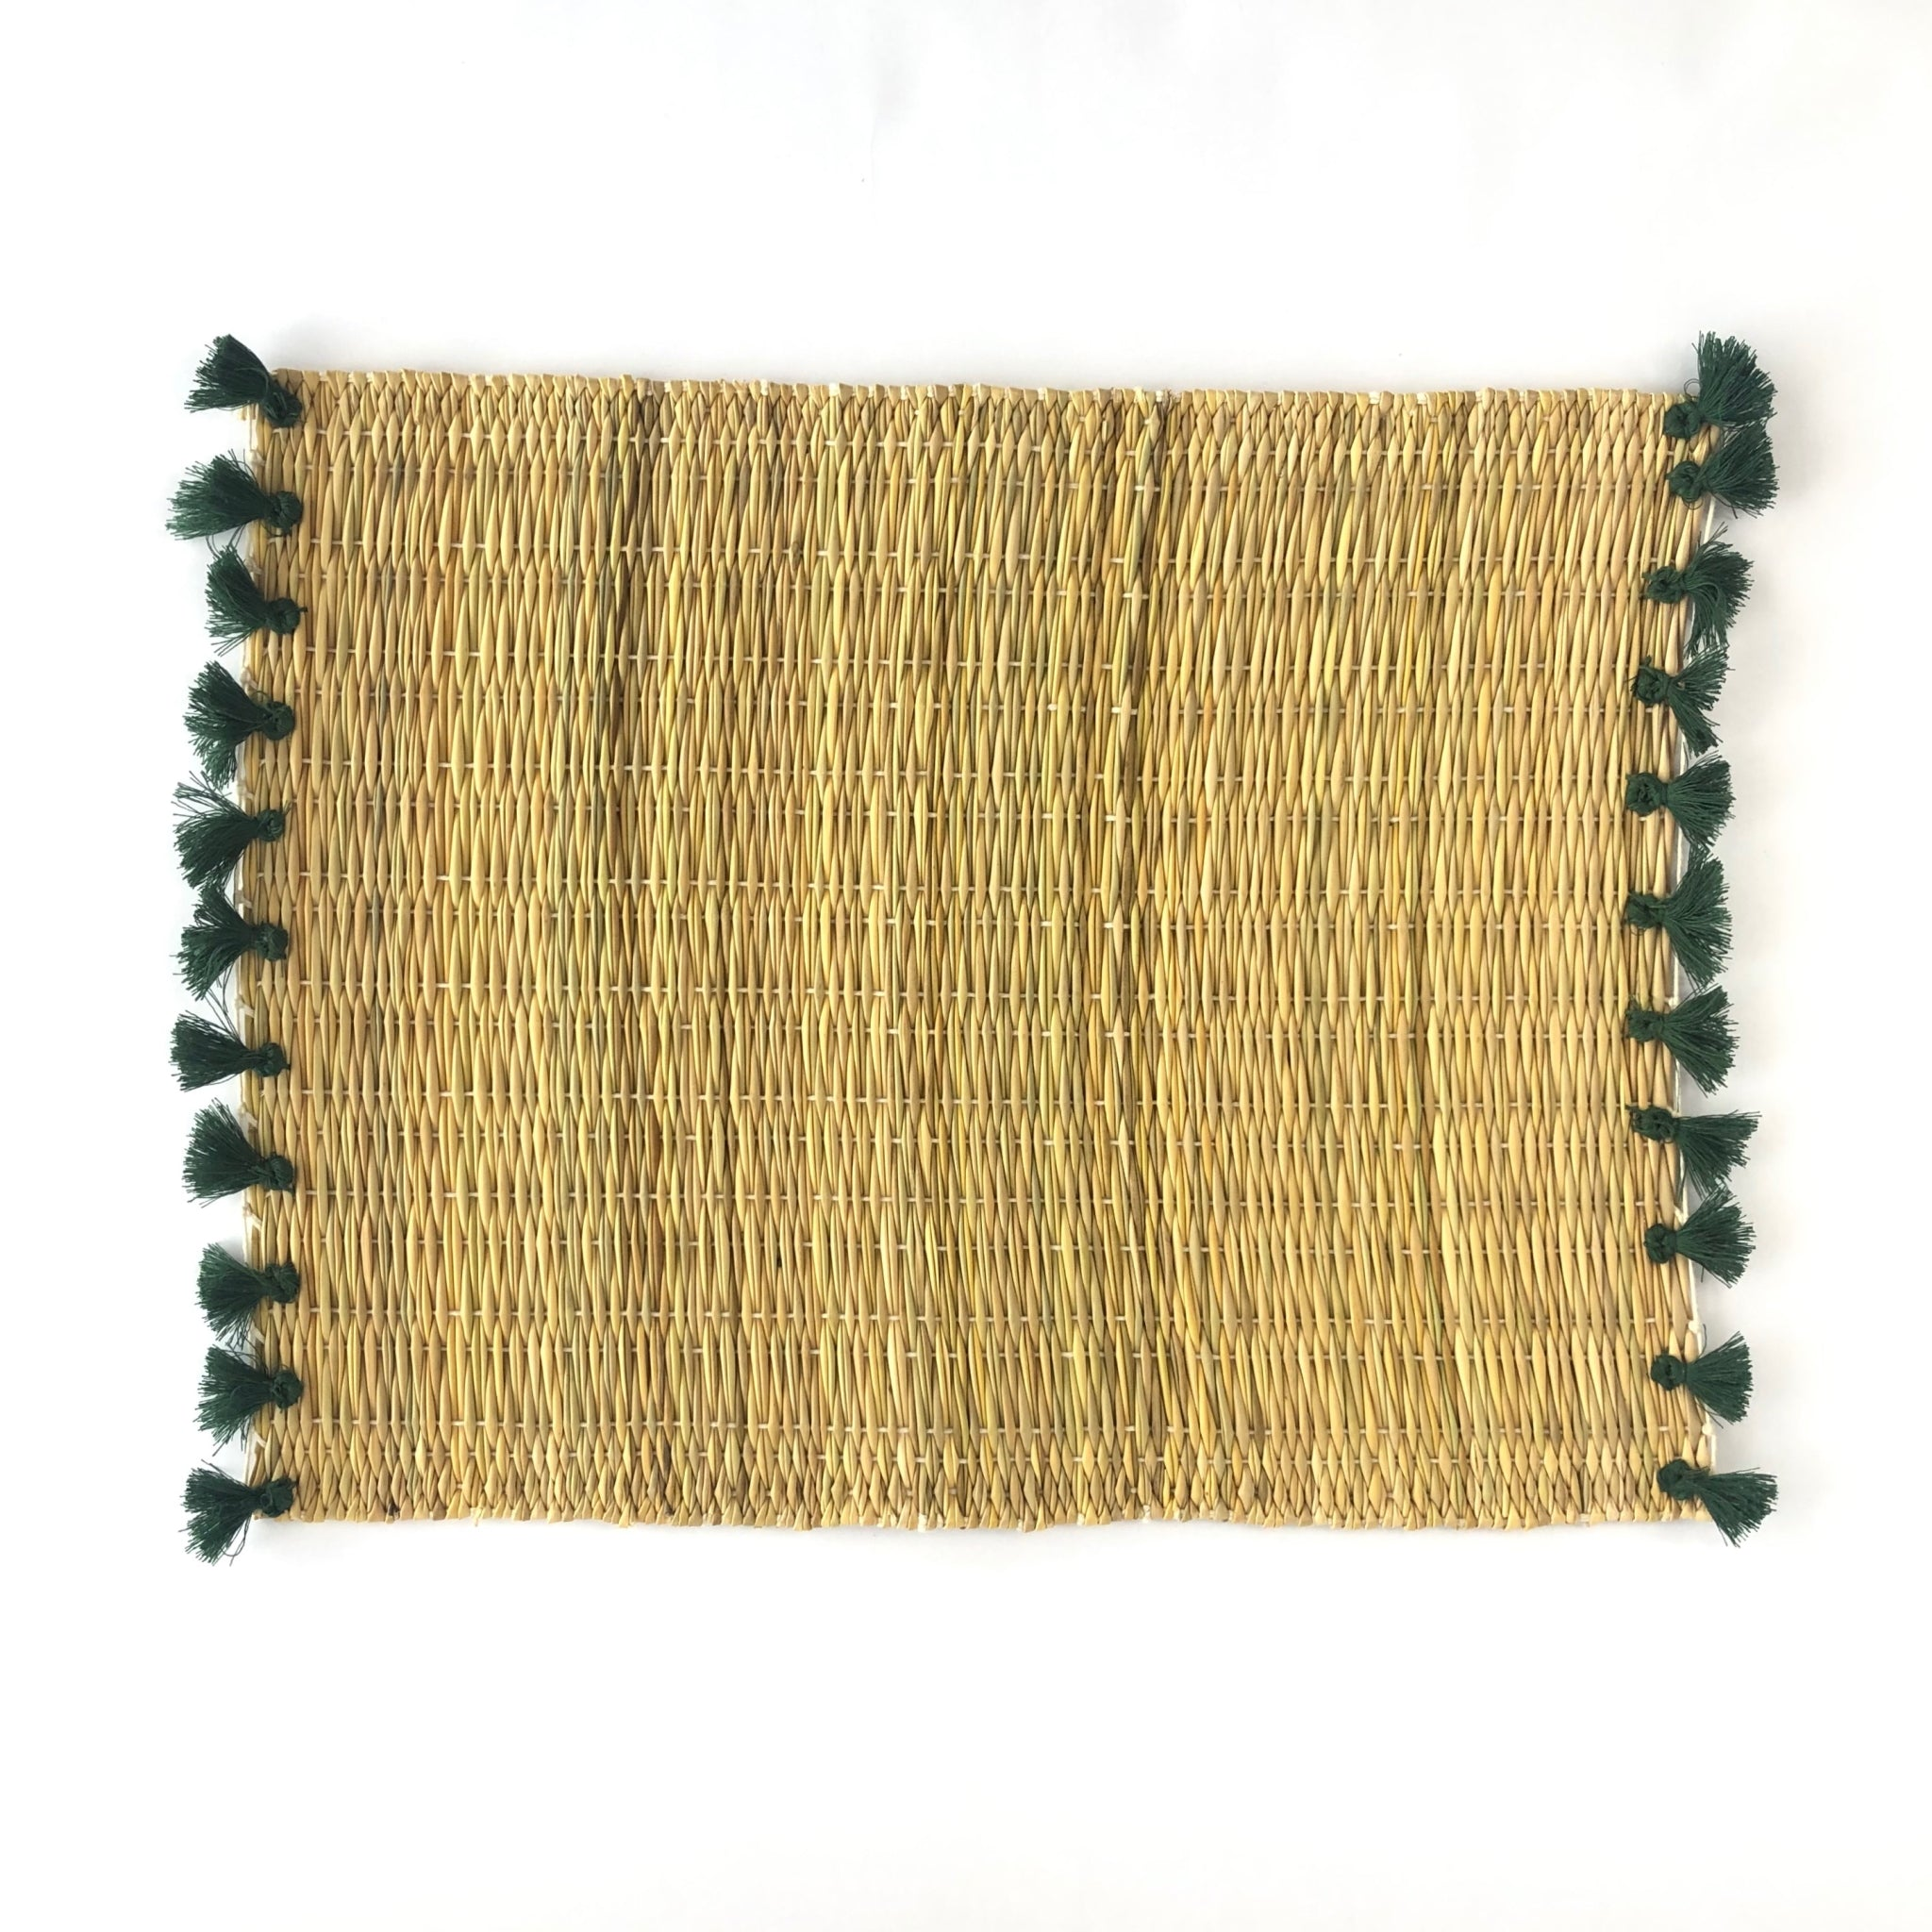 Straw and PomPom Placemats 4pcs